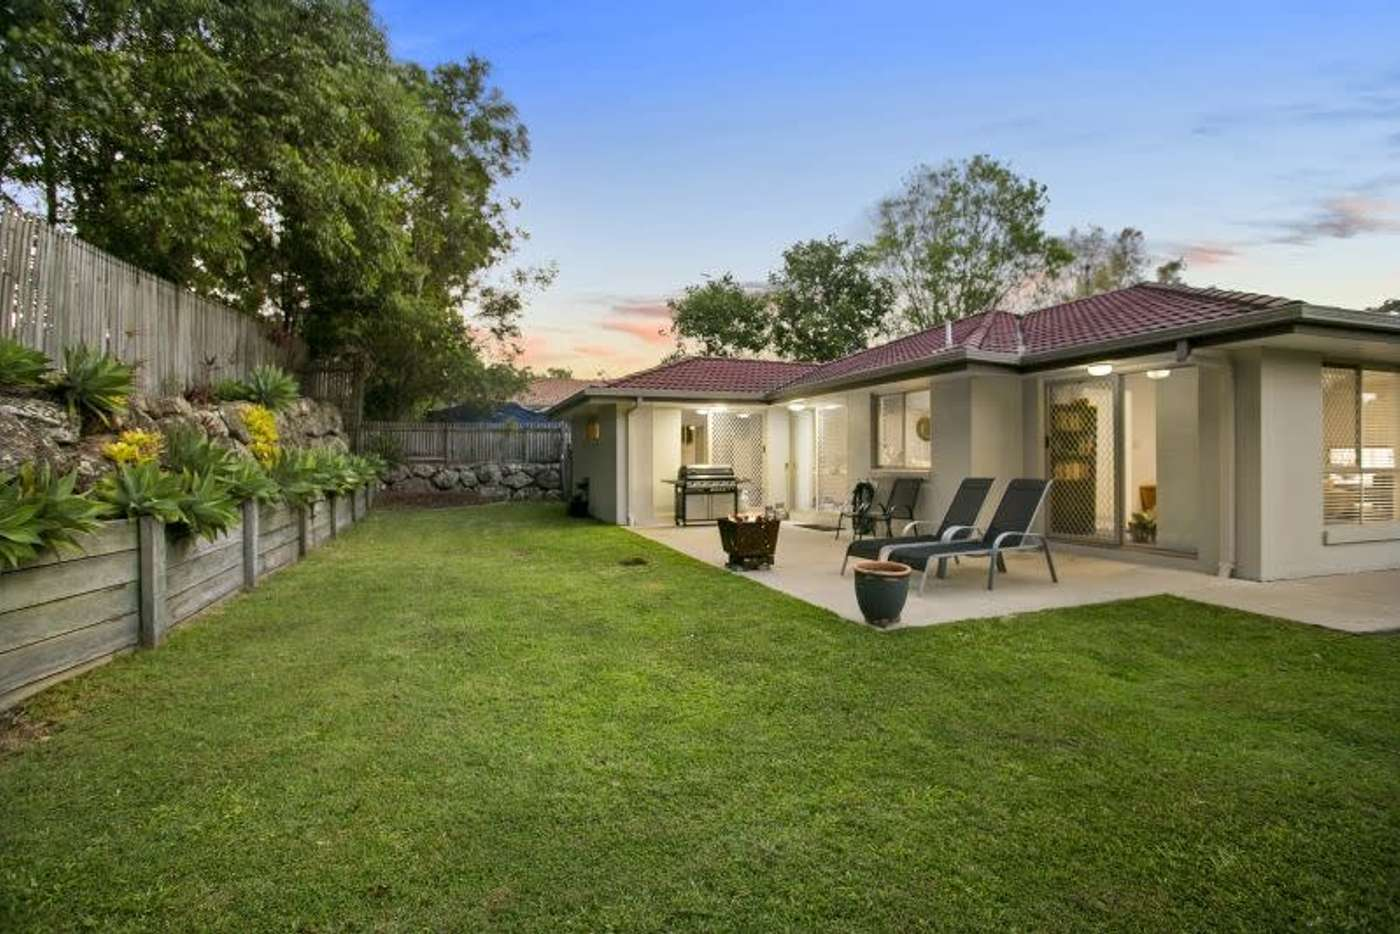 Main view of Homely house listing, 6 Tulipwood Street, Noosaville QLD 4566